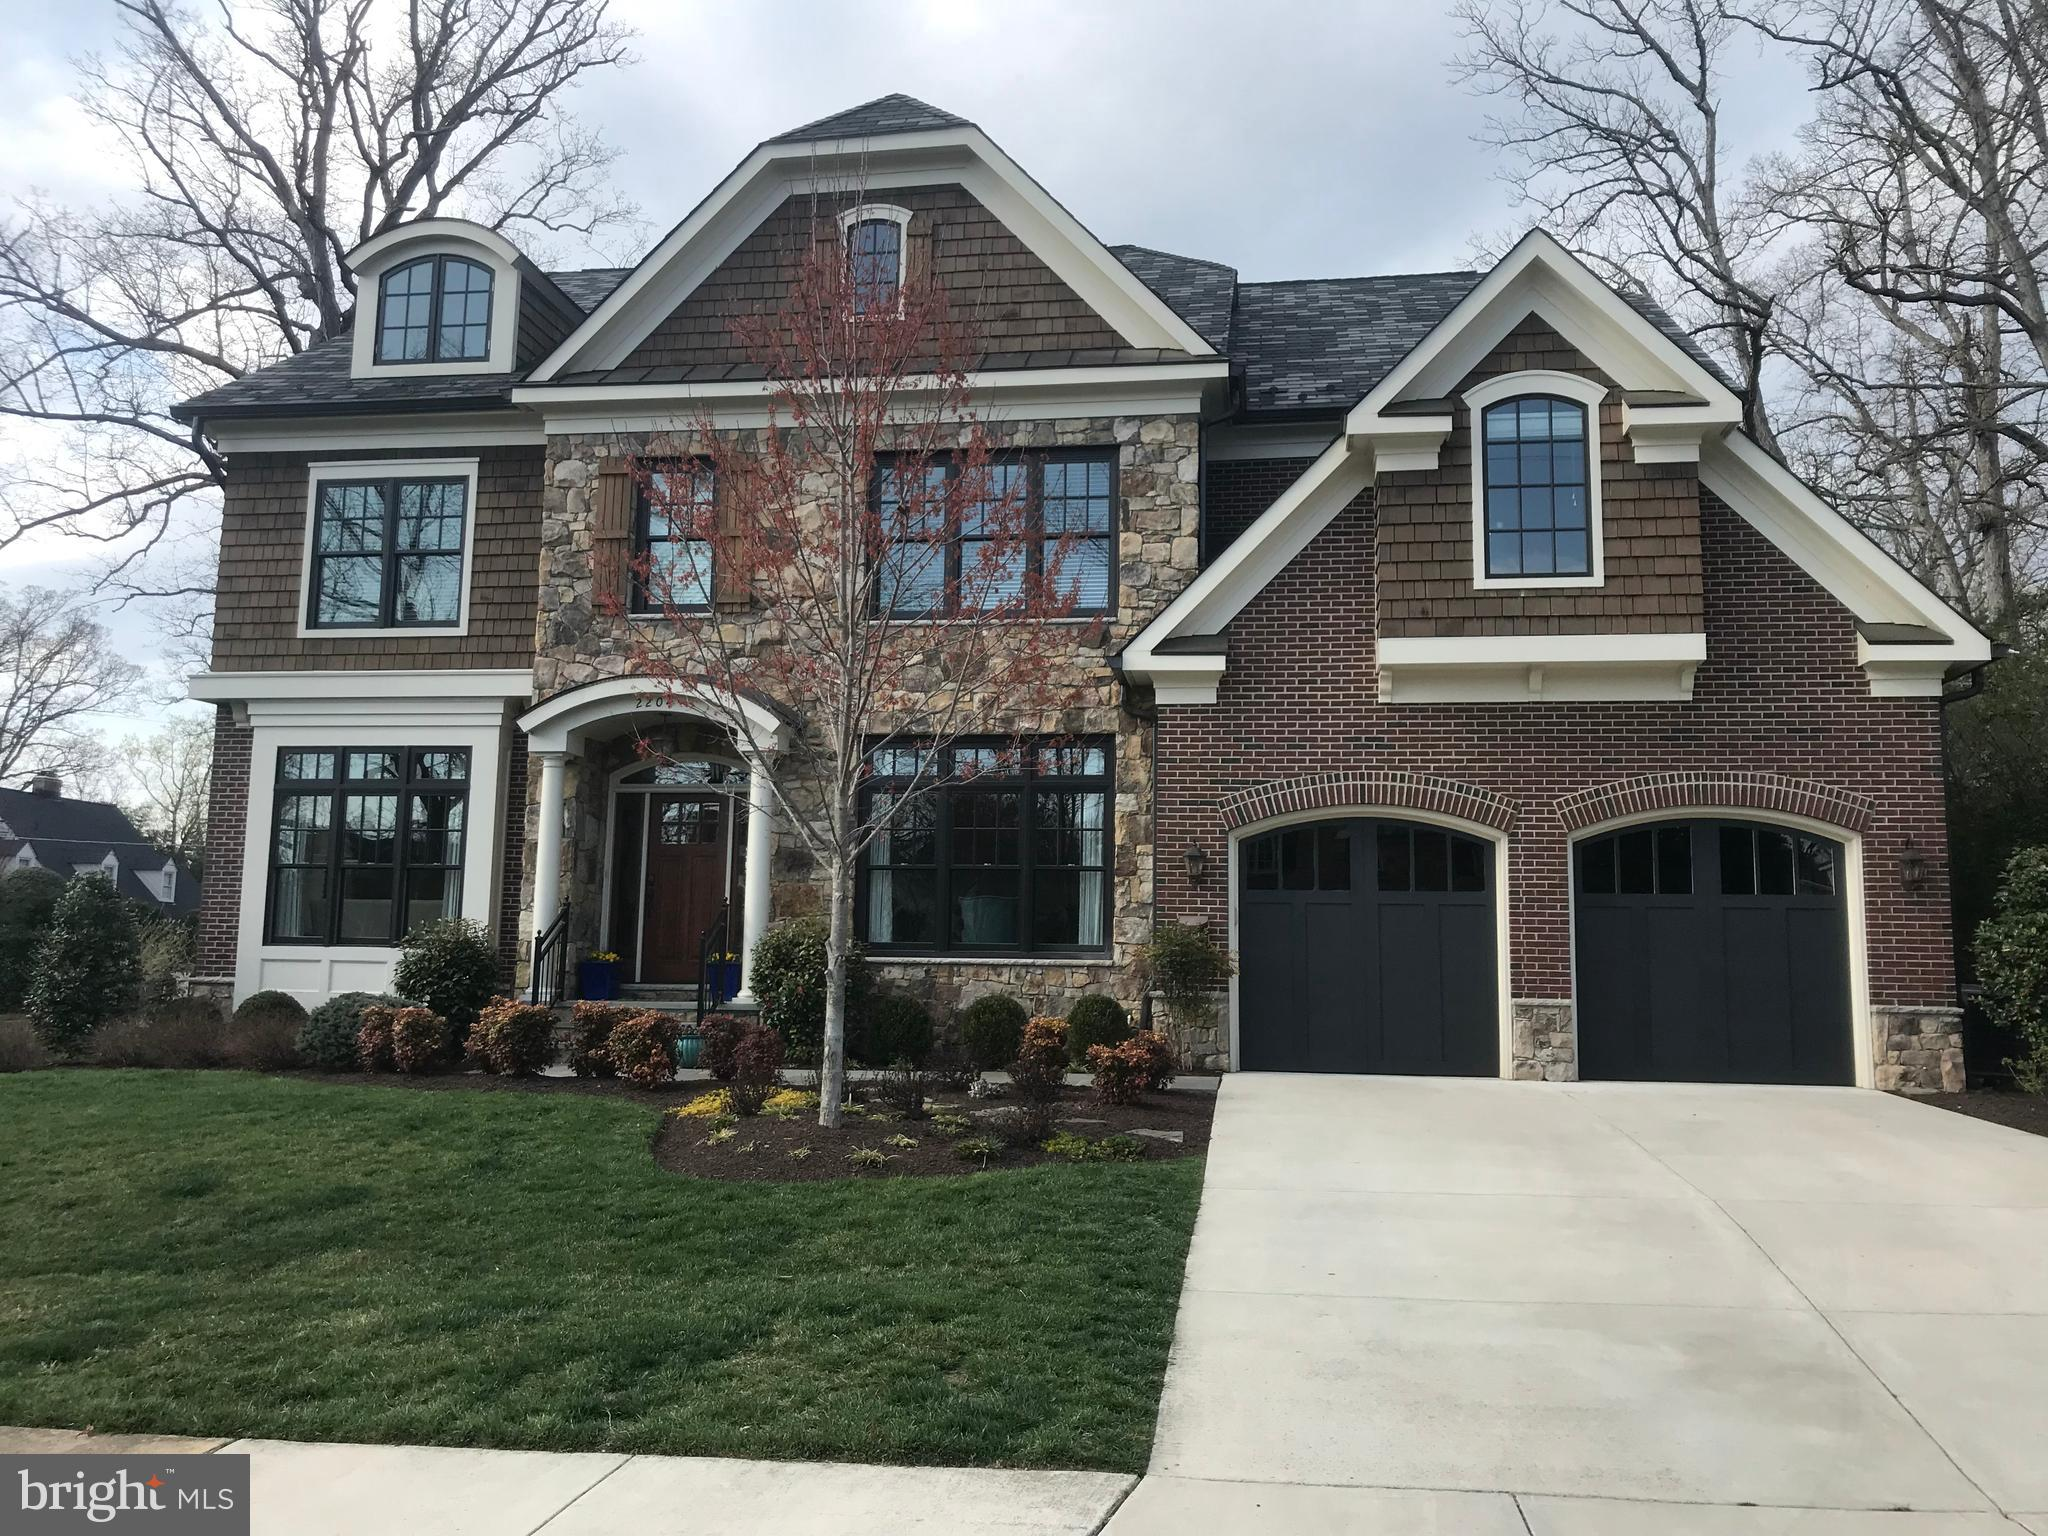 """There is a rare find in every community and this is your opportunity to own this """"stand out"""" custom upgraded home in one of our area's premier communities. Finishing touches on this gorgeous contemporary colonial were completed in early 2014, and the results reveal a truly spectacular urban estate. This home is perfectly sited on a premium corner lot offering a beautiful front elevation view and a good amount of ~romp and play~ space. There are four fully finished levels plus a covered pavilion and stone deck offering marvelous outdoor entertainment space. The home's main level has ten-foot ceilings and has hardwood flooring throughout, as well as crown molding. All other levels have nine-foot ceilings. The open floor plan offers a sun lit Living and Dining room on the Main Level as well as a Library, and a lovely Family Room w/fireplace.  The Family Room also provides  access to the covered pavilion and is   open to the magnificent gourmet Kitchen which  features expansive granite counter tops and high-end appliances to include a six-burner gas Wolf range. An over-sized two-level center island with beautiful bevel-edge granite is both a working station and pull-up eating counter, easily seating six.   Custom cabinetry and panel-front appliances add tremendous storage. Two Kitchen Aid refrigerator drawers are nice bonuses. A window-surround Breakfast room adjoins the spectacular Kitchen and both rooms have custom grass cloth wall paper. Beautiful custom valances and blinds adorn the Breakfast Room windows. The Butler's Pantry has a wine cooler, wet bar and Miele coffee bar. A Half Bath is just steps from the Kitchen. The Mud Room is adjacent to the Kitchen and offers tremendous extra storage.  The over-sized two-car Garage is entered from the Mud Room. The Bedroom level features a private Master Suite with a coffered ceiling, two walk-in closets, a luxurious ensuite bath with slipper tub, double sink vanity and over-sized shower. The sitting room is a private space """